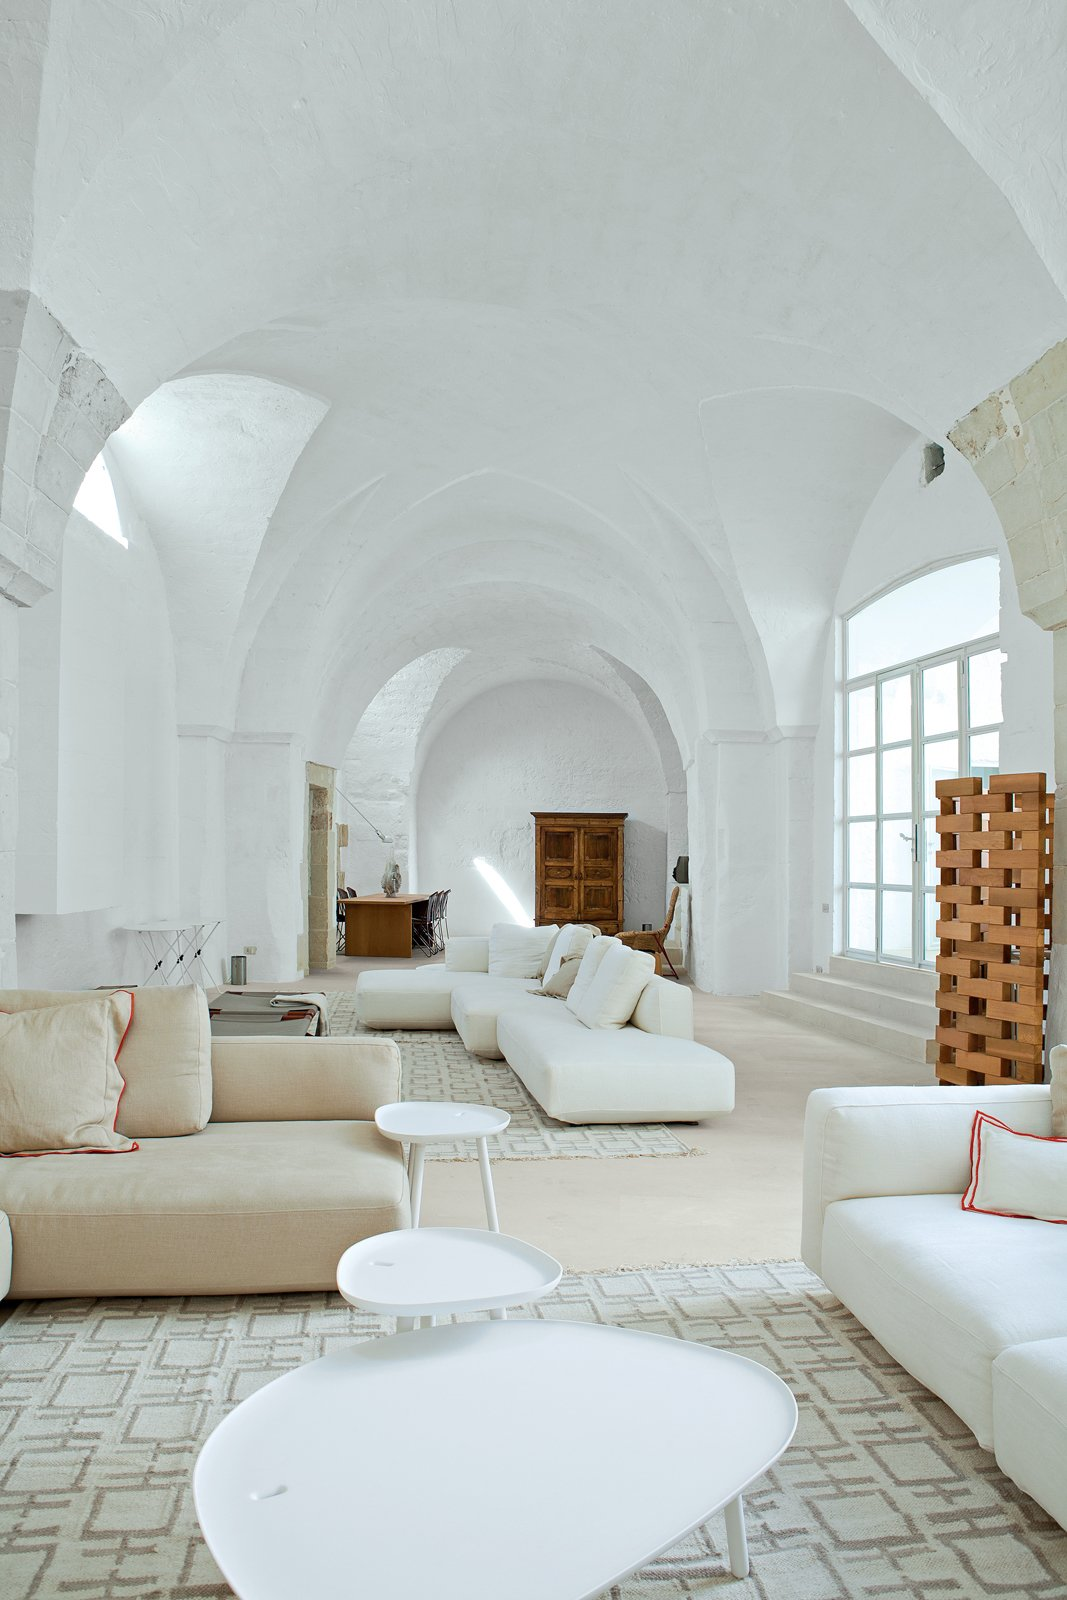 Photo 8 of 8 in Modern Meets Ancient in a Renovated Italian Vacation ...